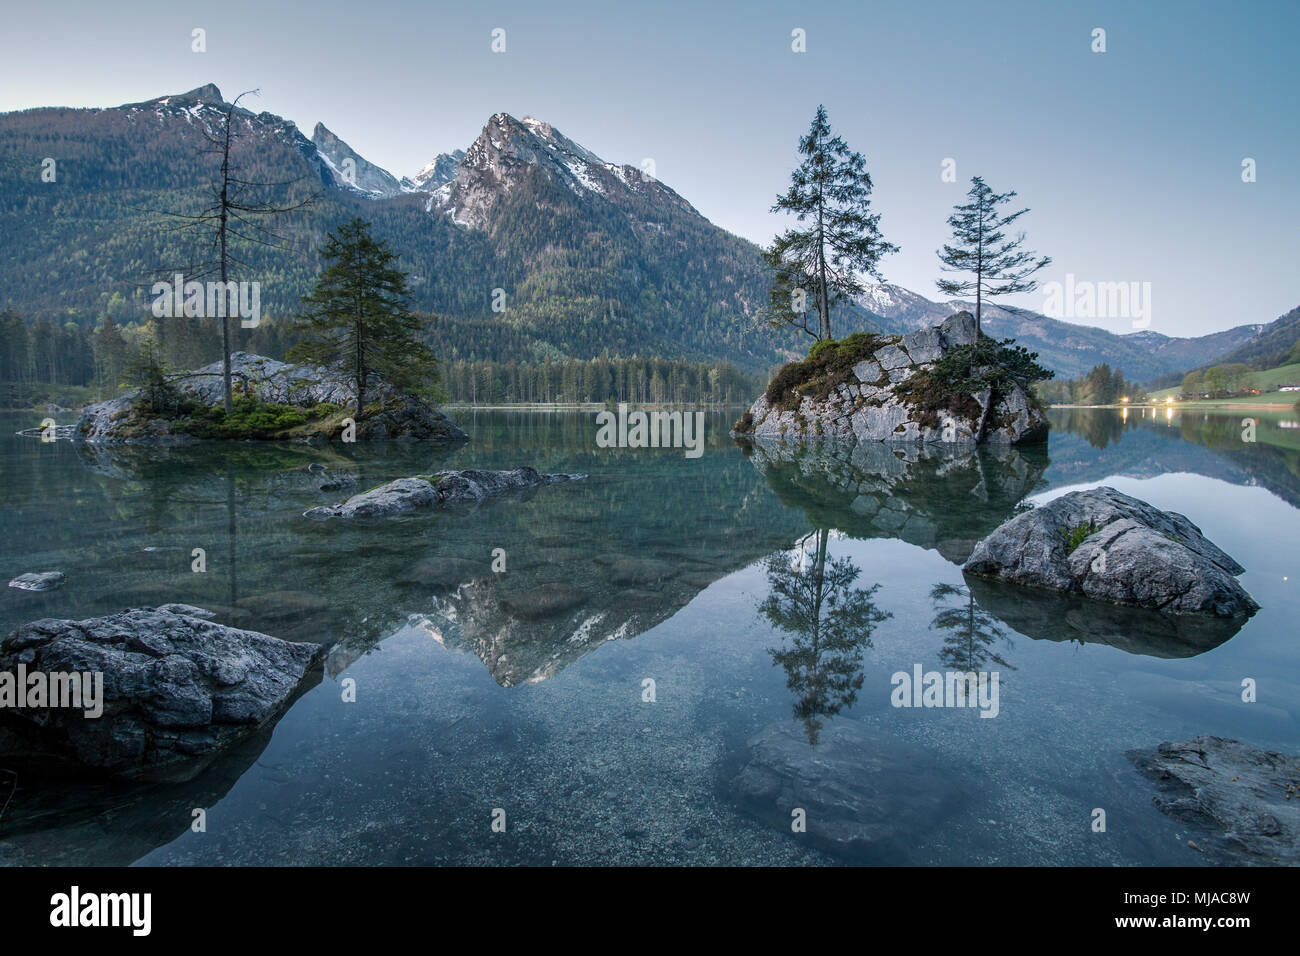 Lake in the mountains - Stock Image